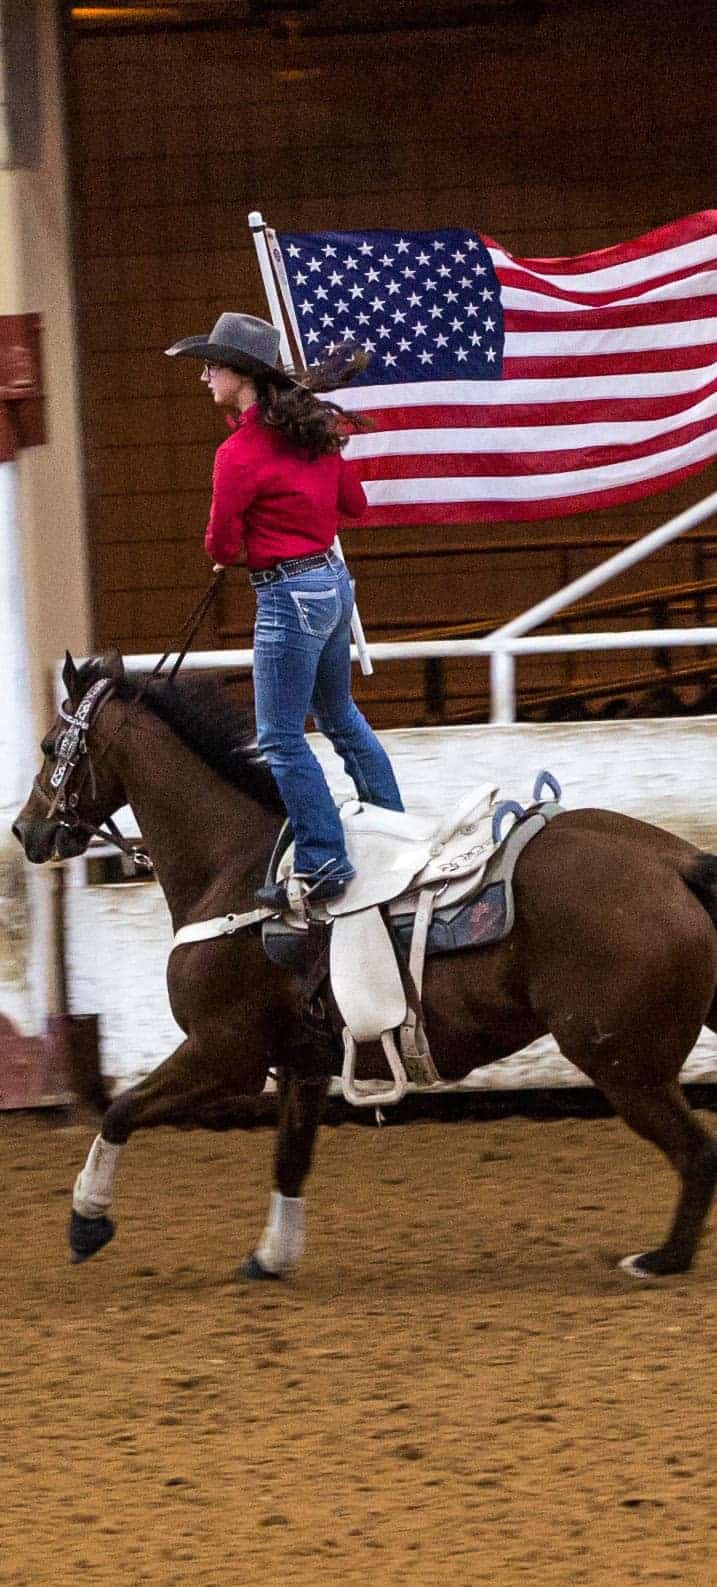 USTPA Team Penning - Rider with American Flag